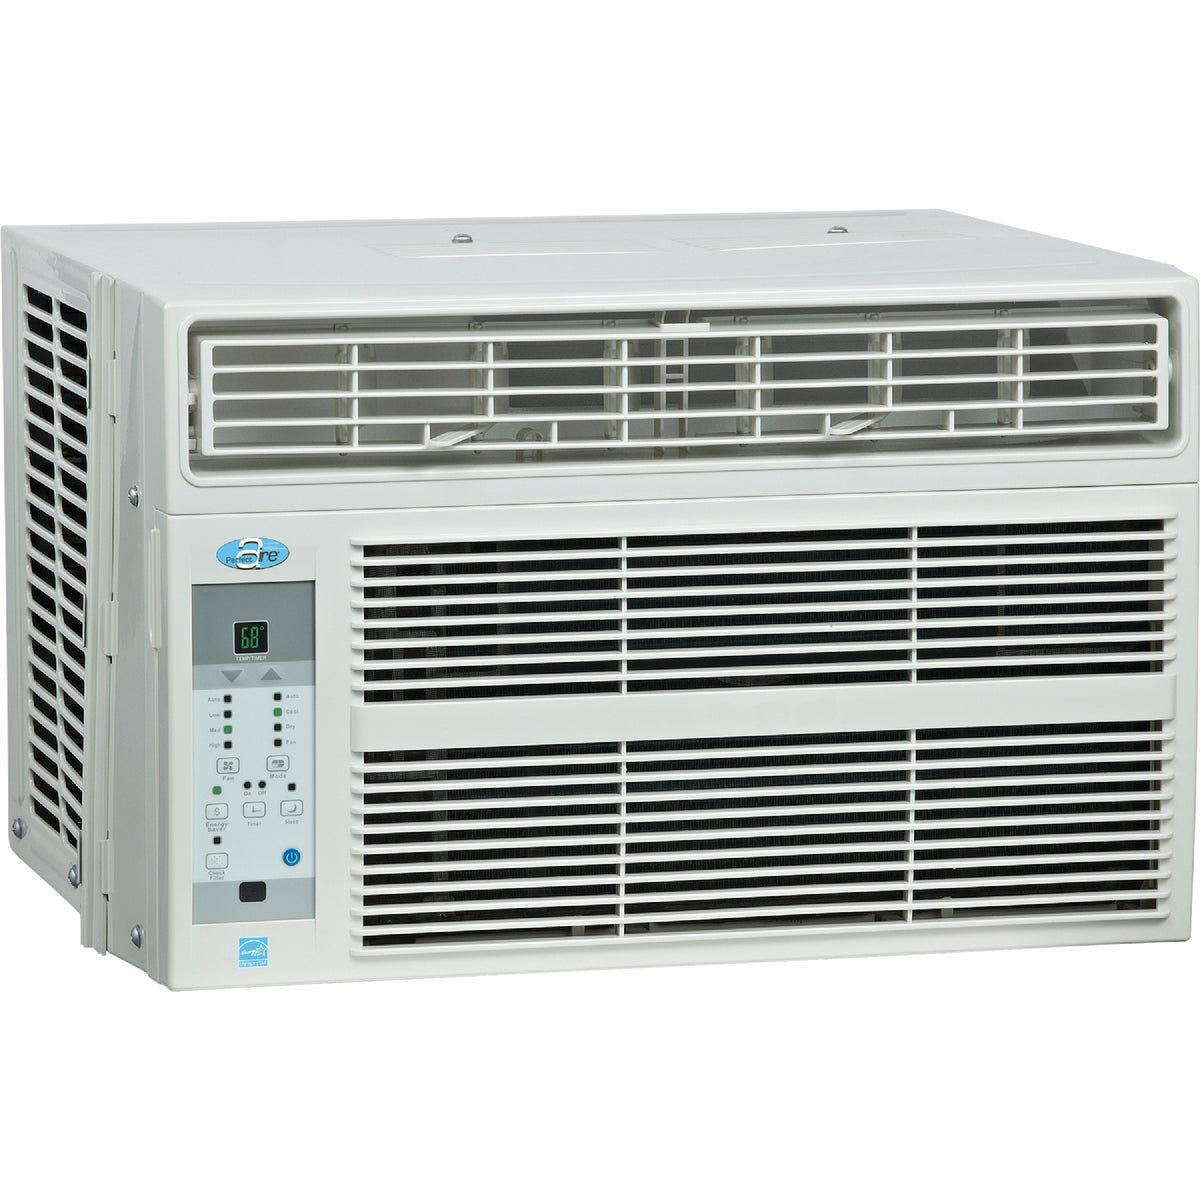 8000BTU AIR CONDITIONER - PAC8000 by Perfect Aire Import